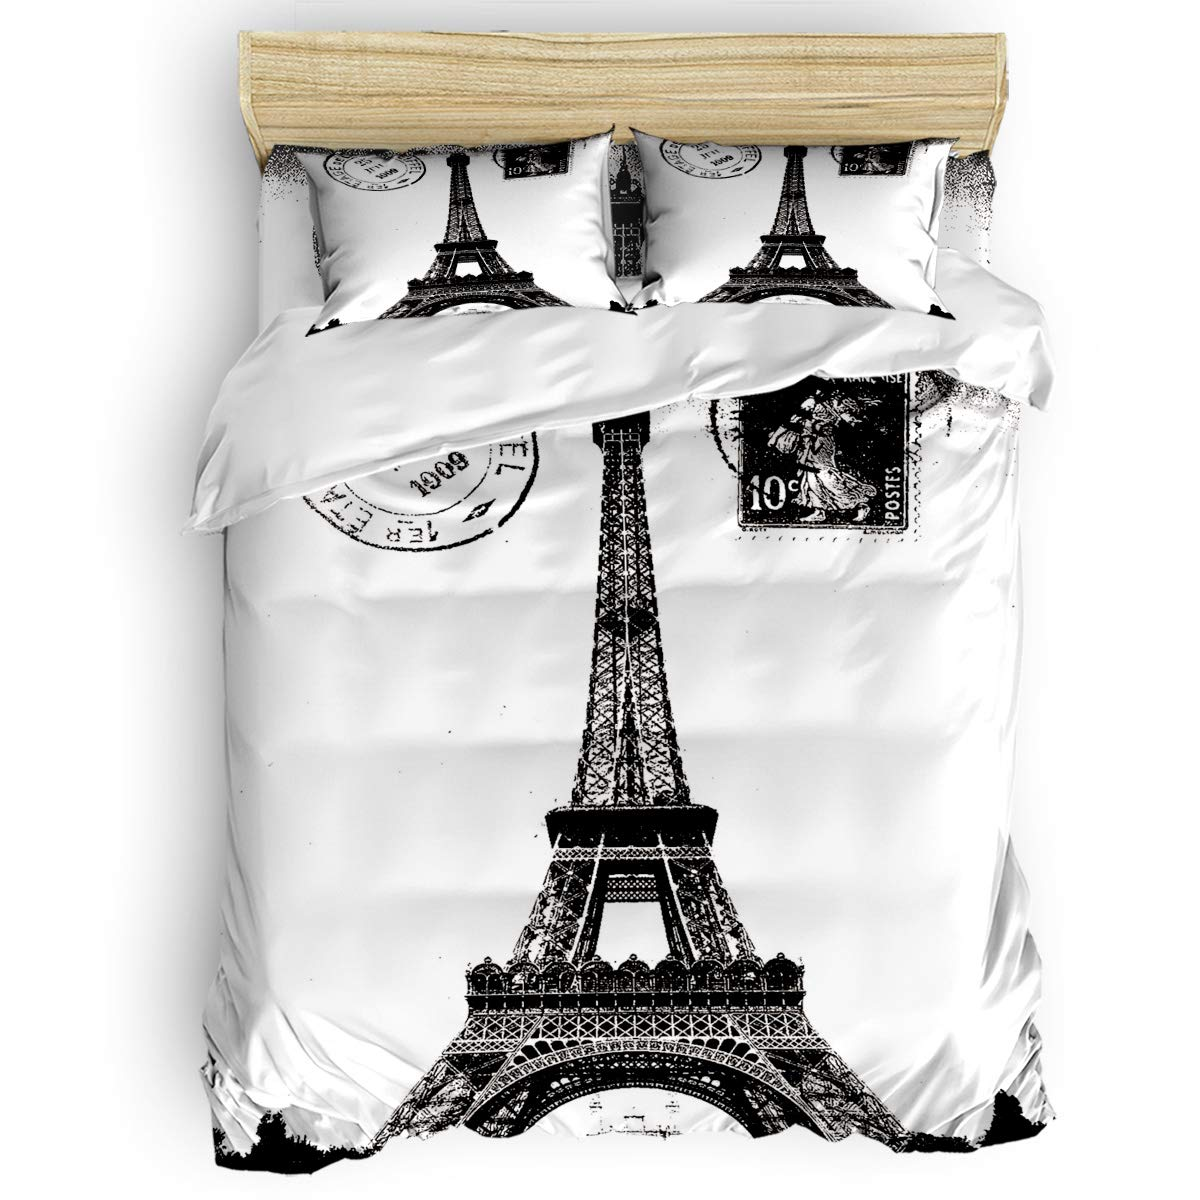 CHARMHOME Girls Bedding Duvet Cover 4 Piece Set - Retro Stamps of Paris Eiffel Tower Lightweight and Soft Bedding Collection - 1 Flat Sheet 1 Duvet Cover 2 Pillow Cases - Queen